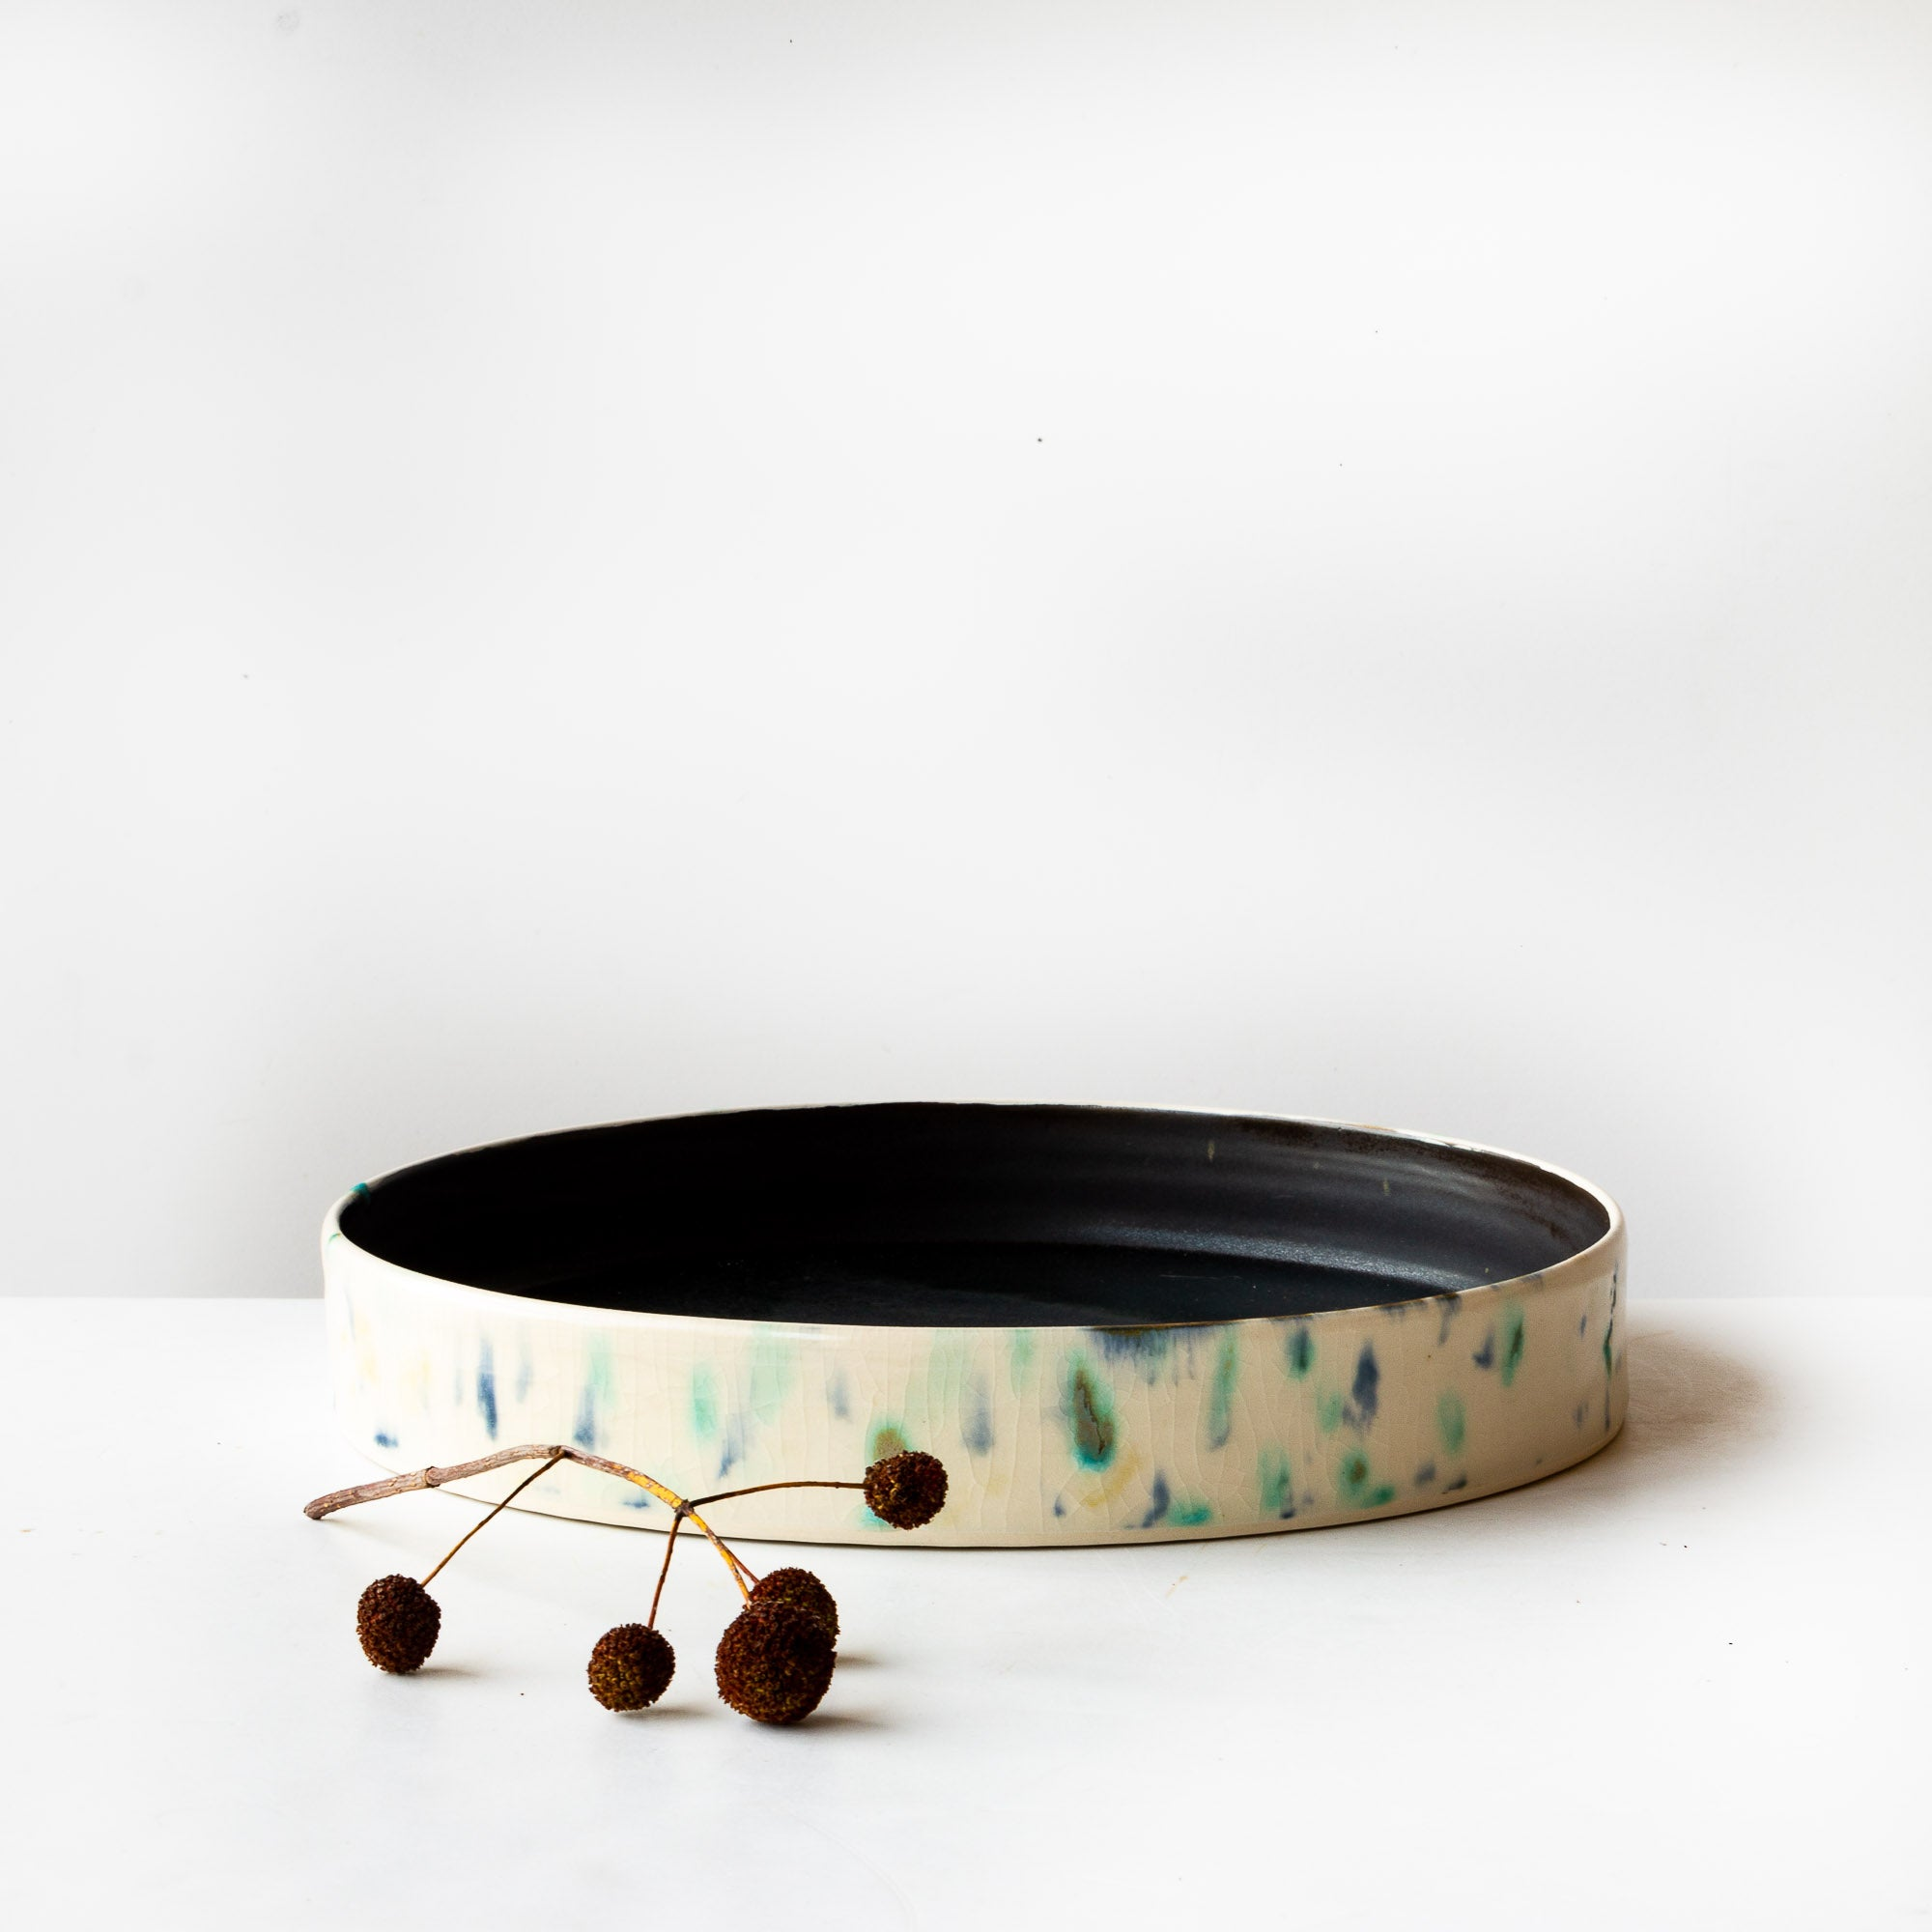 Hanabira - Large Round Ceramic Tray - Sold by Chic & Basta